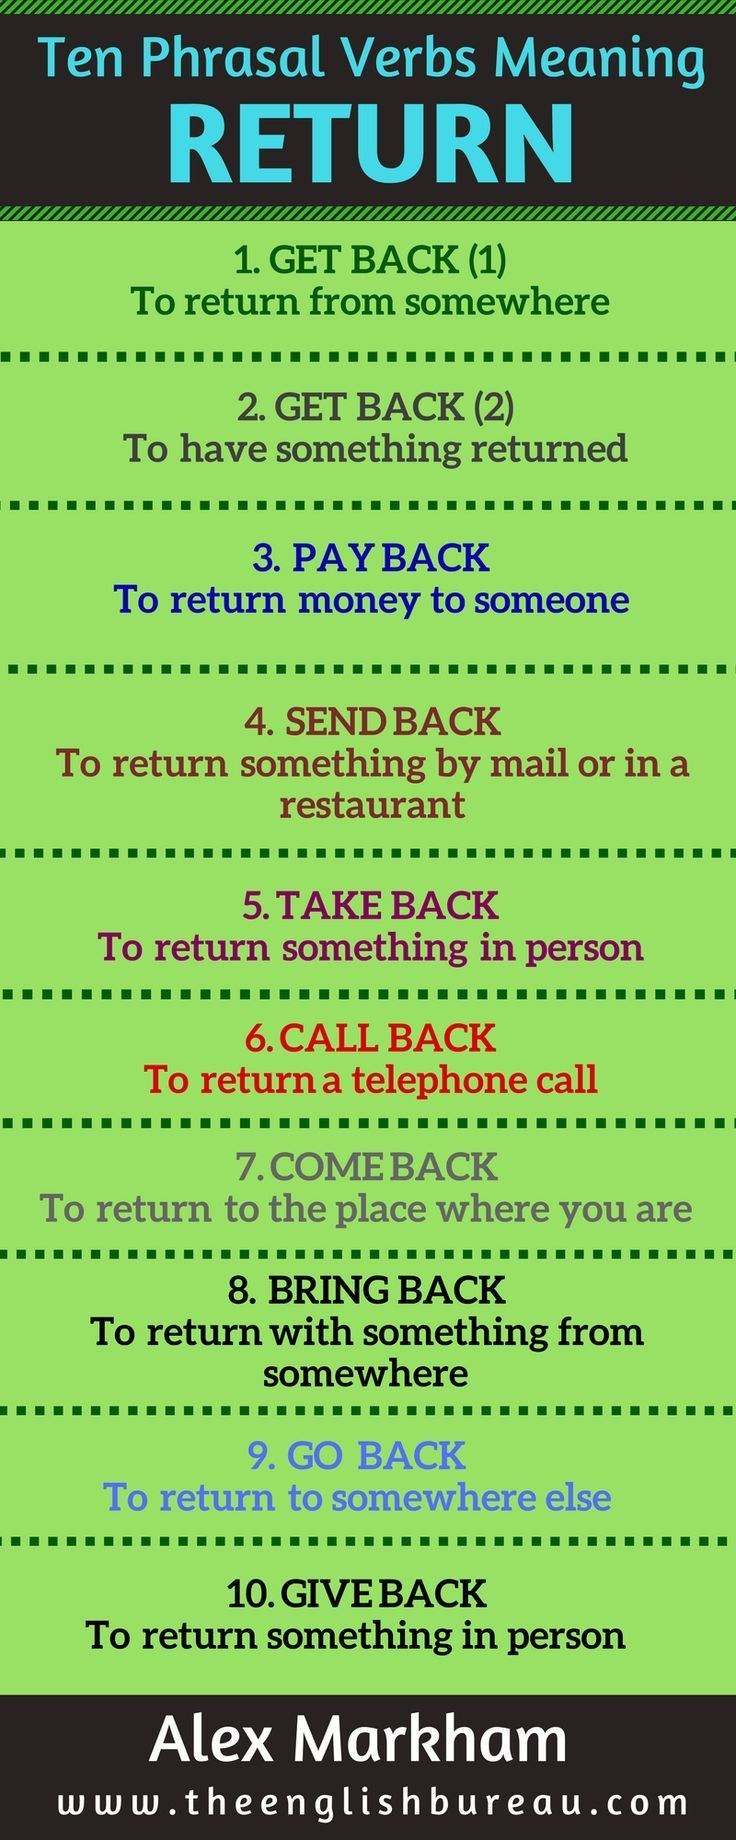 10 Phrasal Verbs Meaning Return Learn English Learn Portuguese